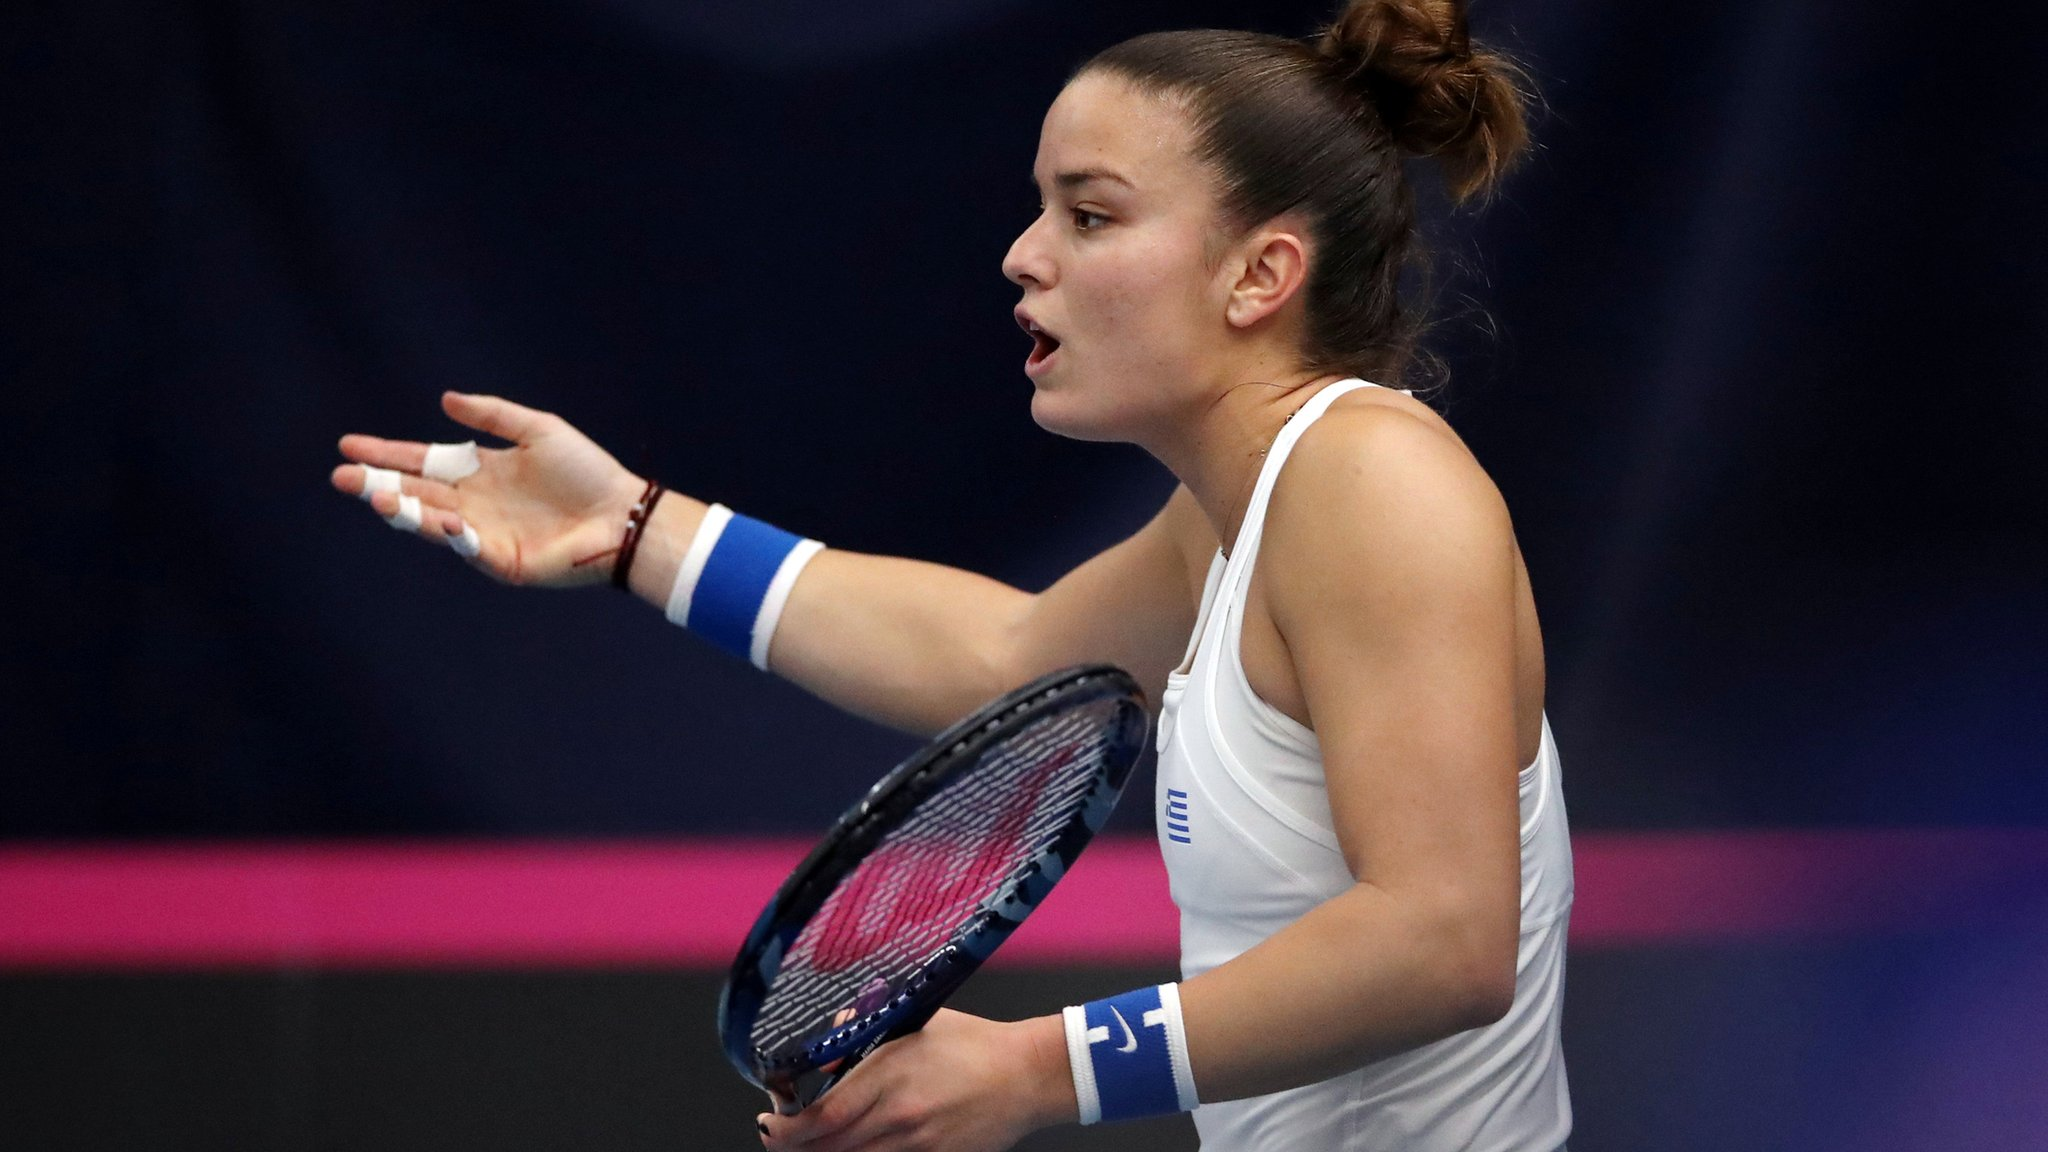 Fed Cup 2019: Line judges criticised by Greek players in GB win